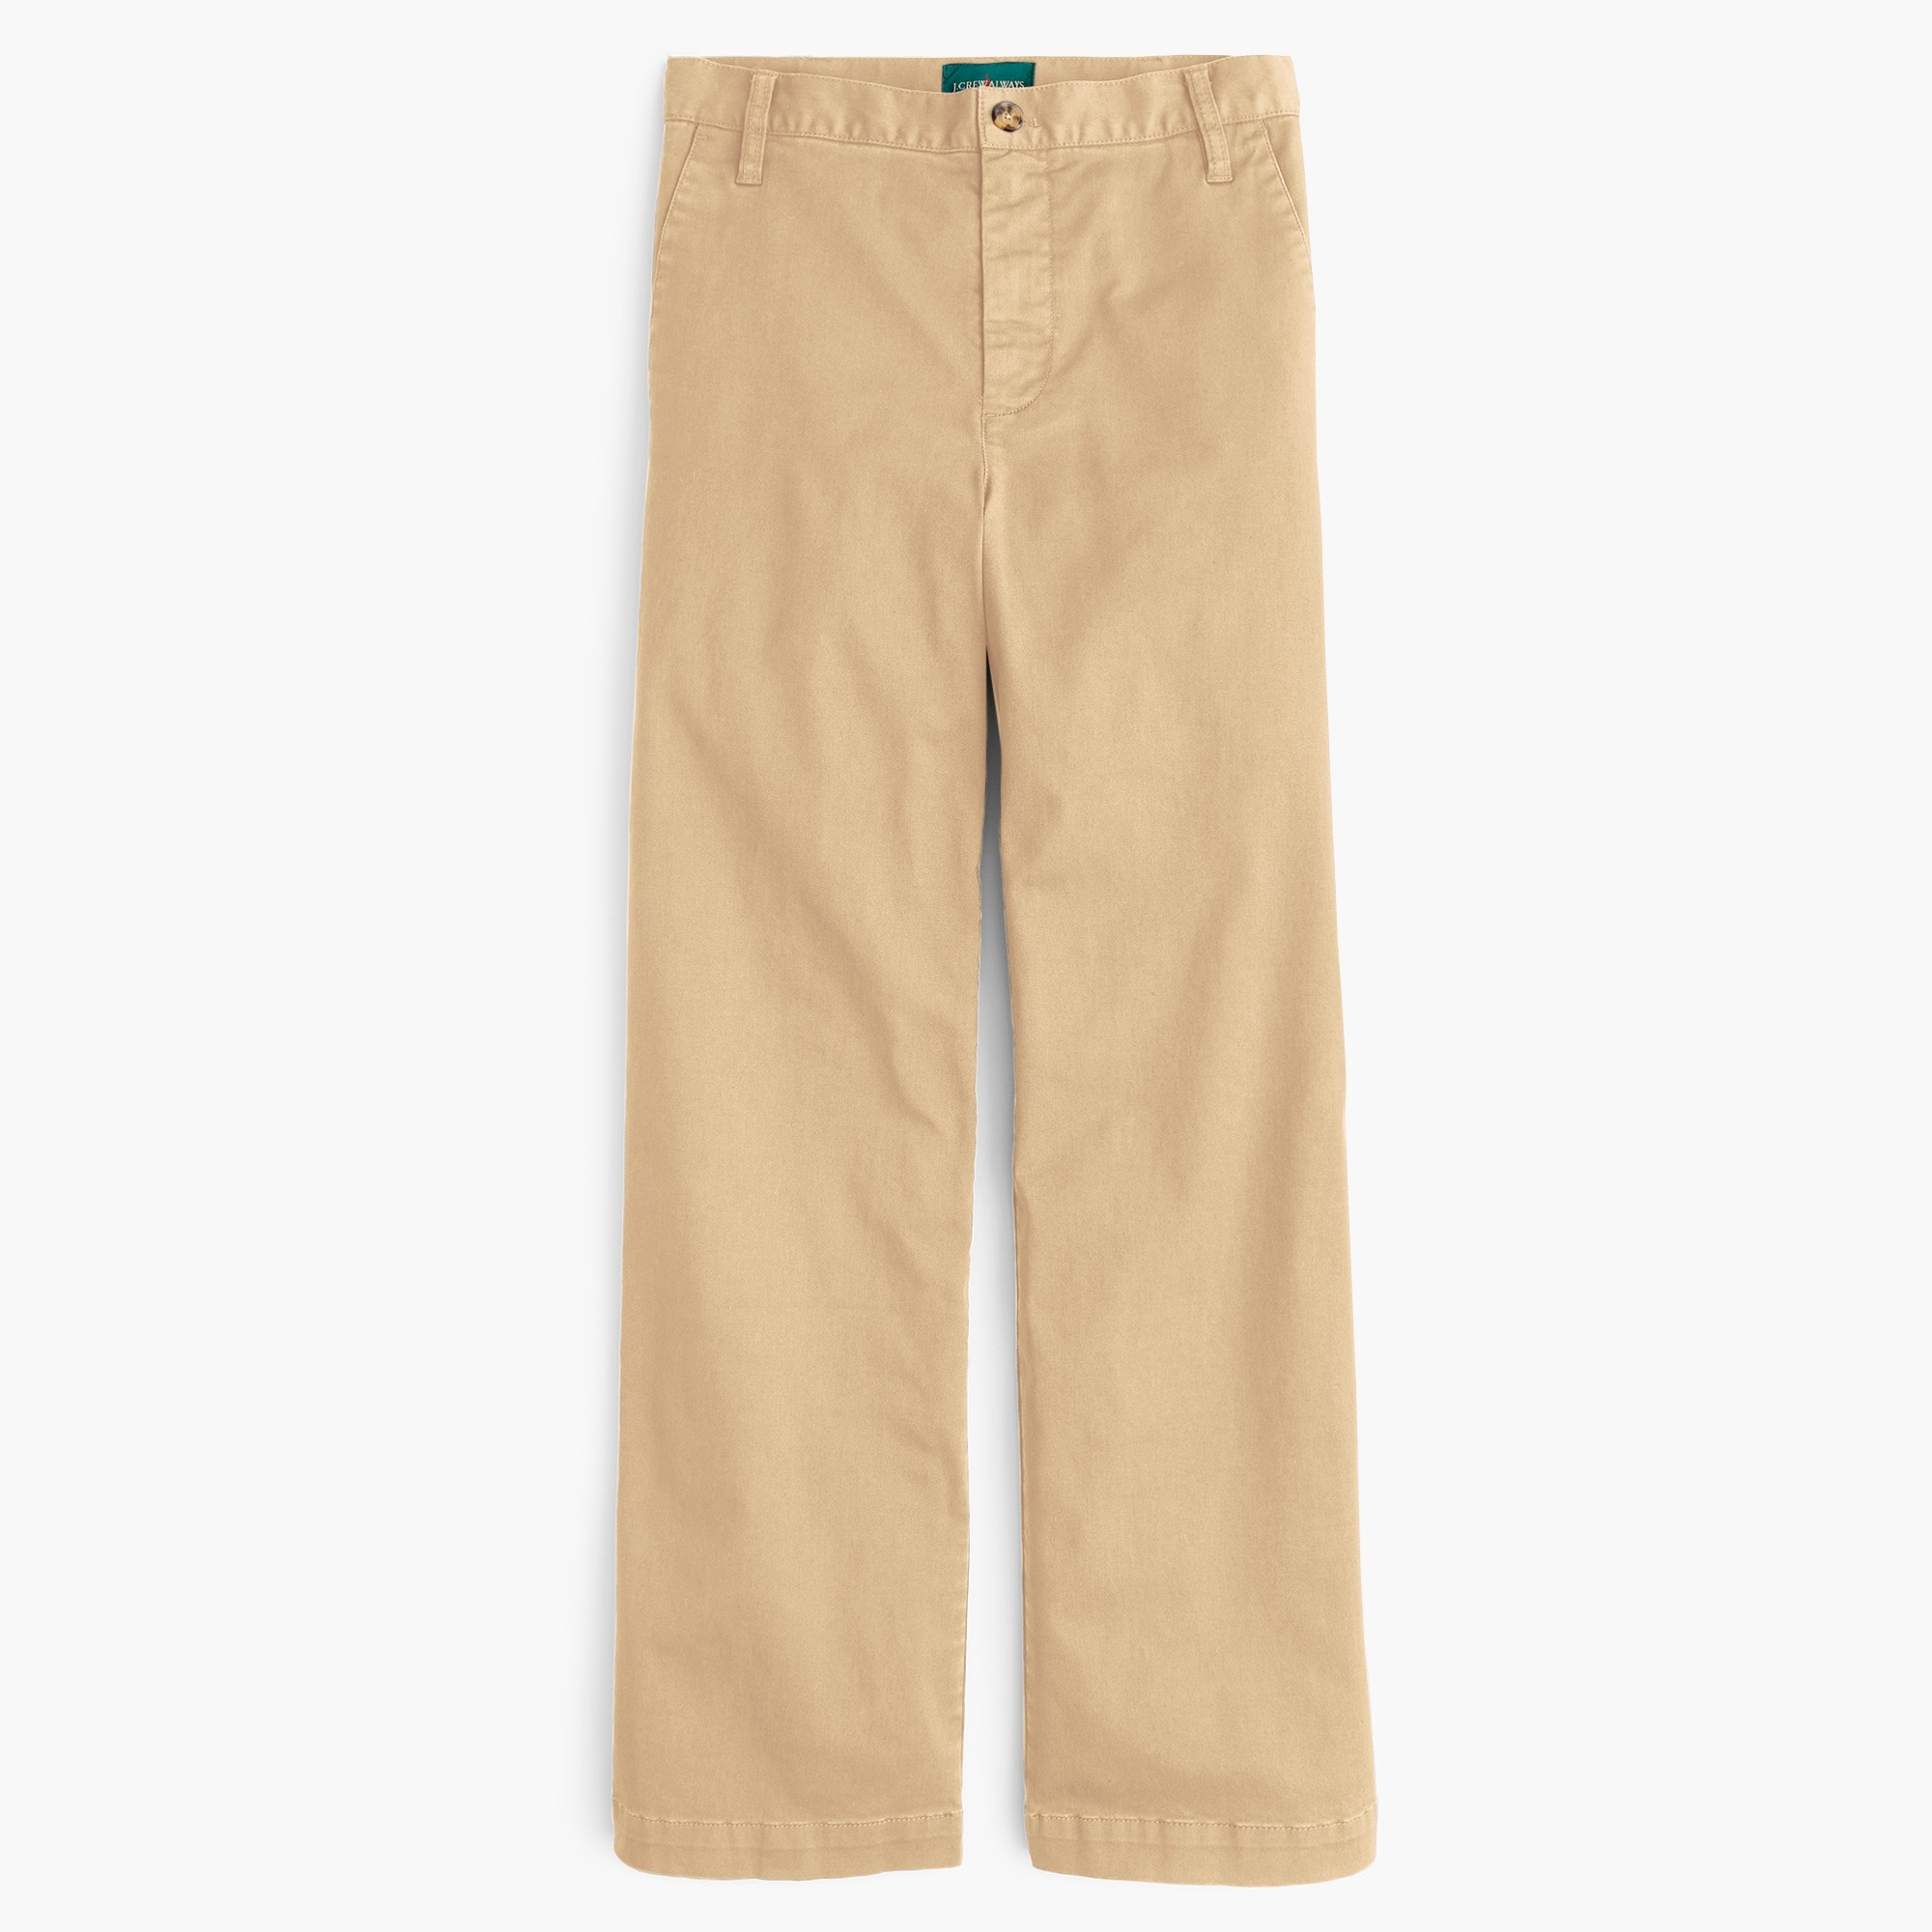 Image 1 for Petite full-length wide-leg chino pant